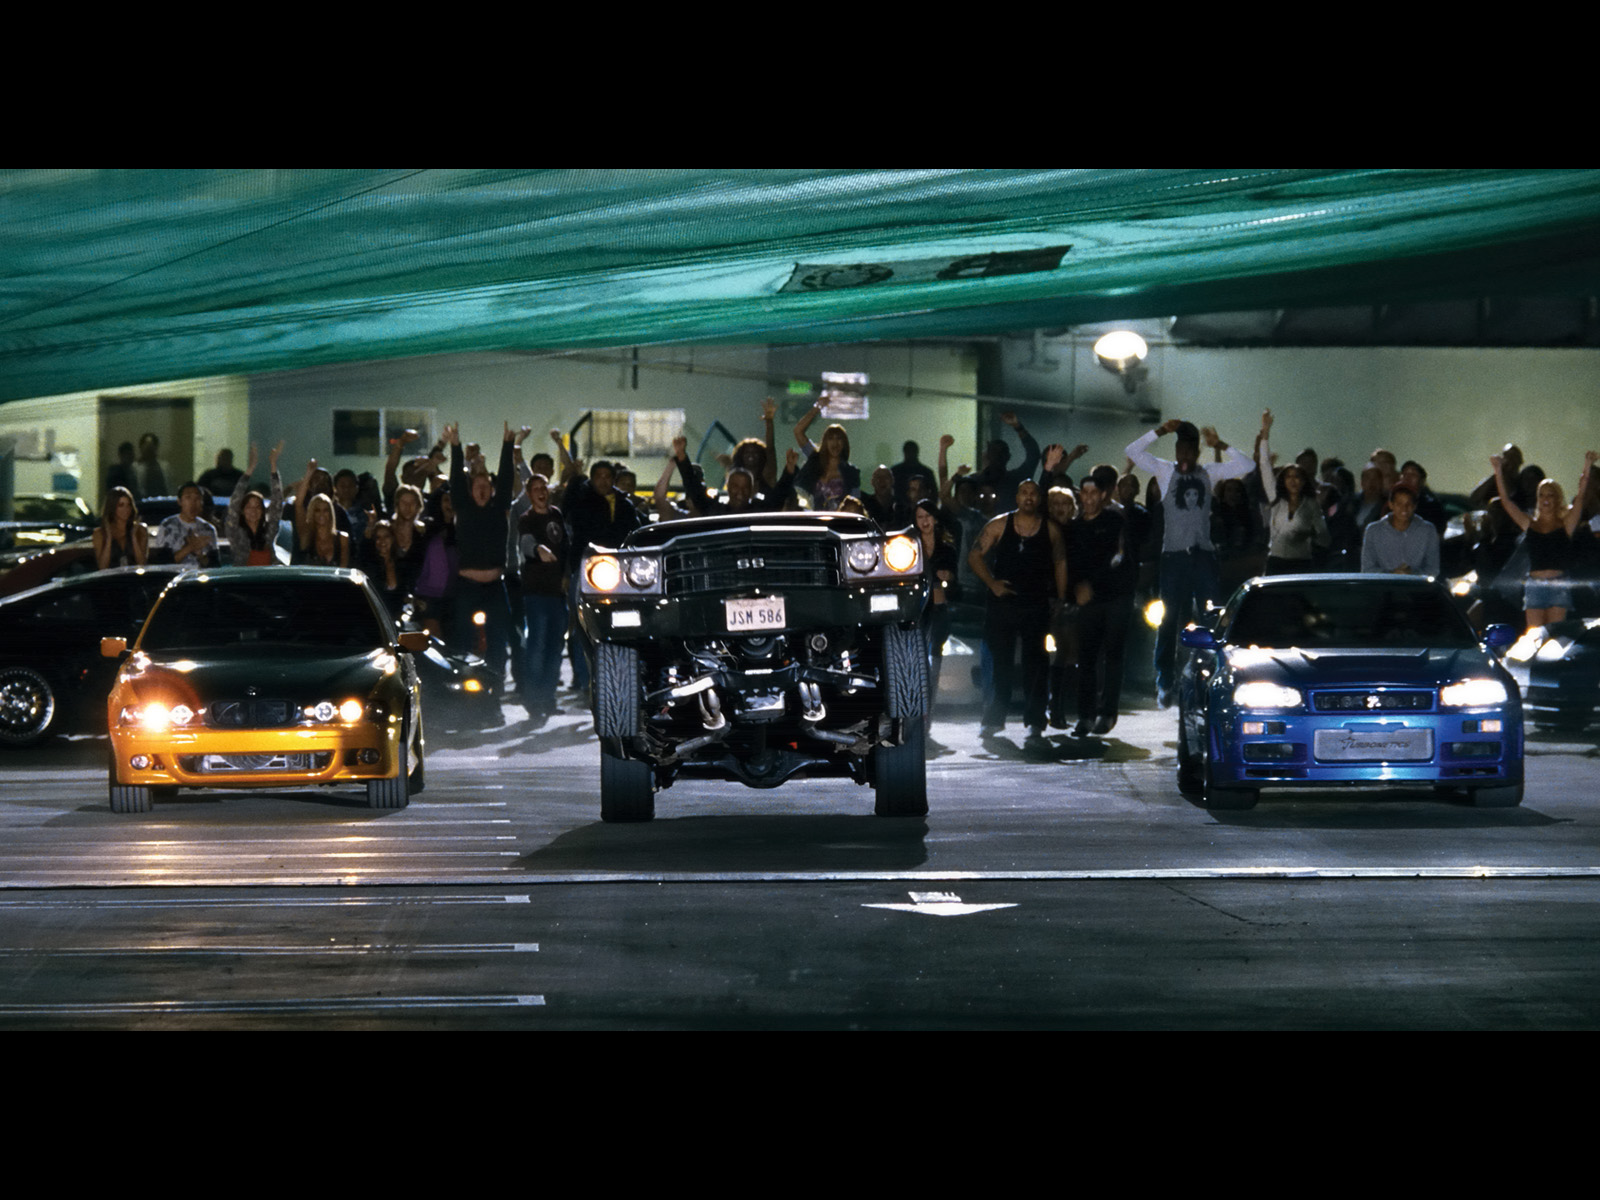 Quality Fast And Furious 7 Cars Hd Wallpapers is HD wallpaper 1600x1200